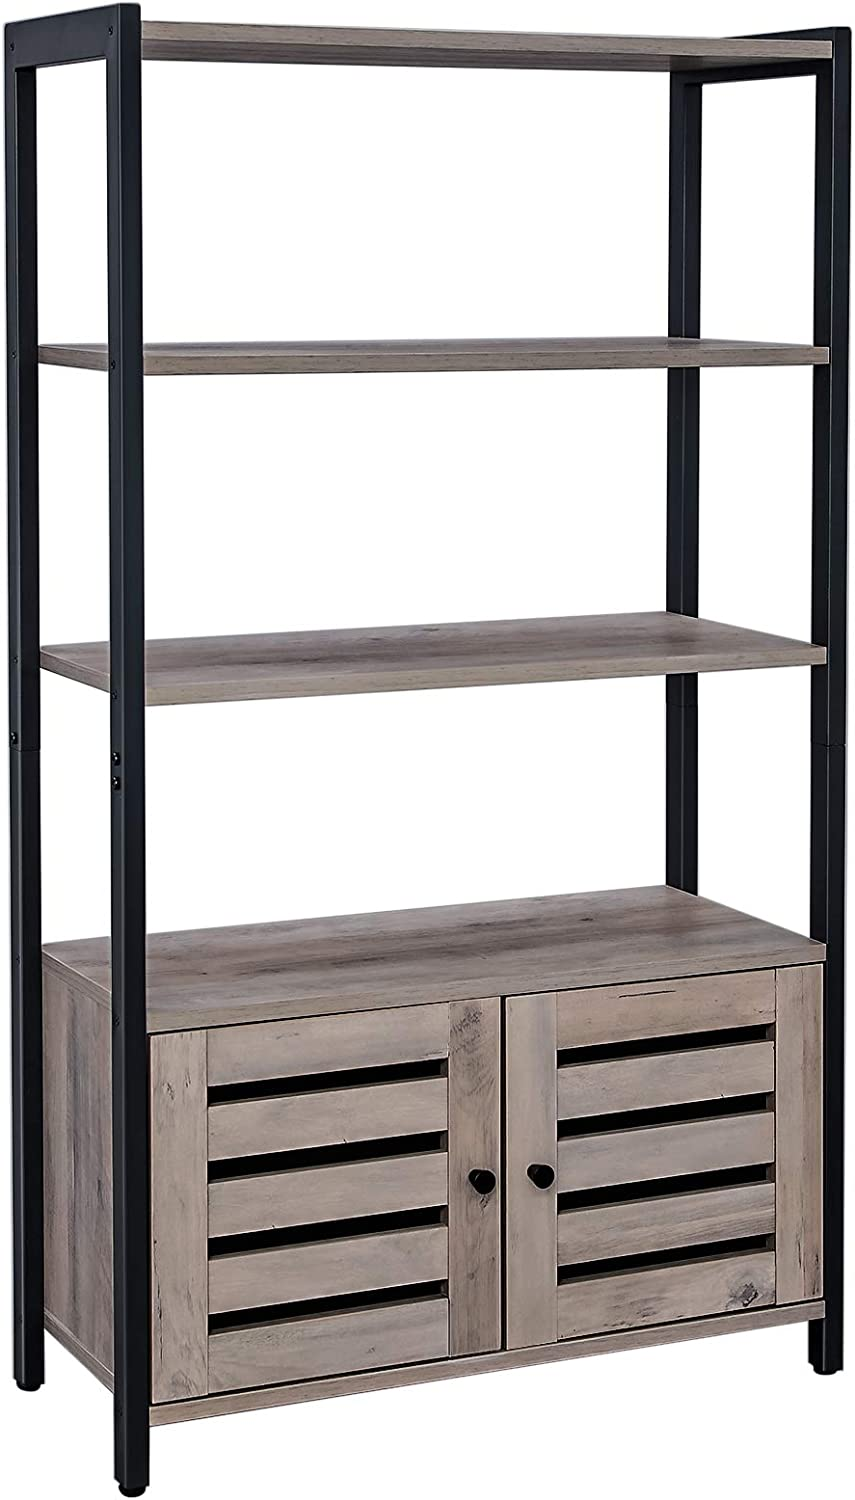 VASAGLE Bookcase, Floor-Standing Storage Cabinet and Cupboard with 2 Louvred Doors and 3 Shelves, Bookshelf in Home Office, Living Room, Multifunctional, Industrial, Greige and Black LSC75MB